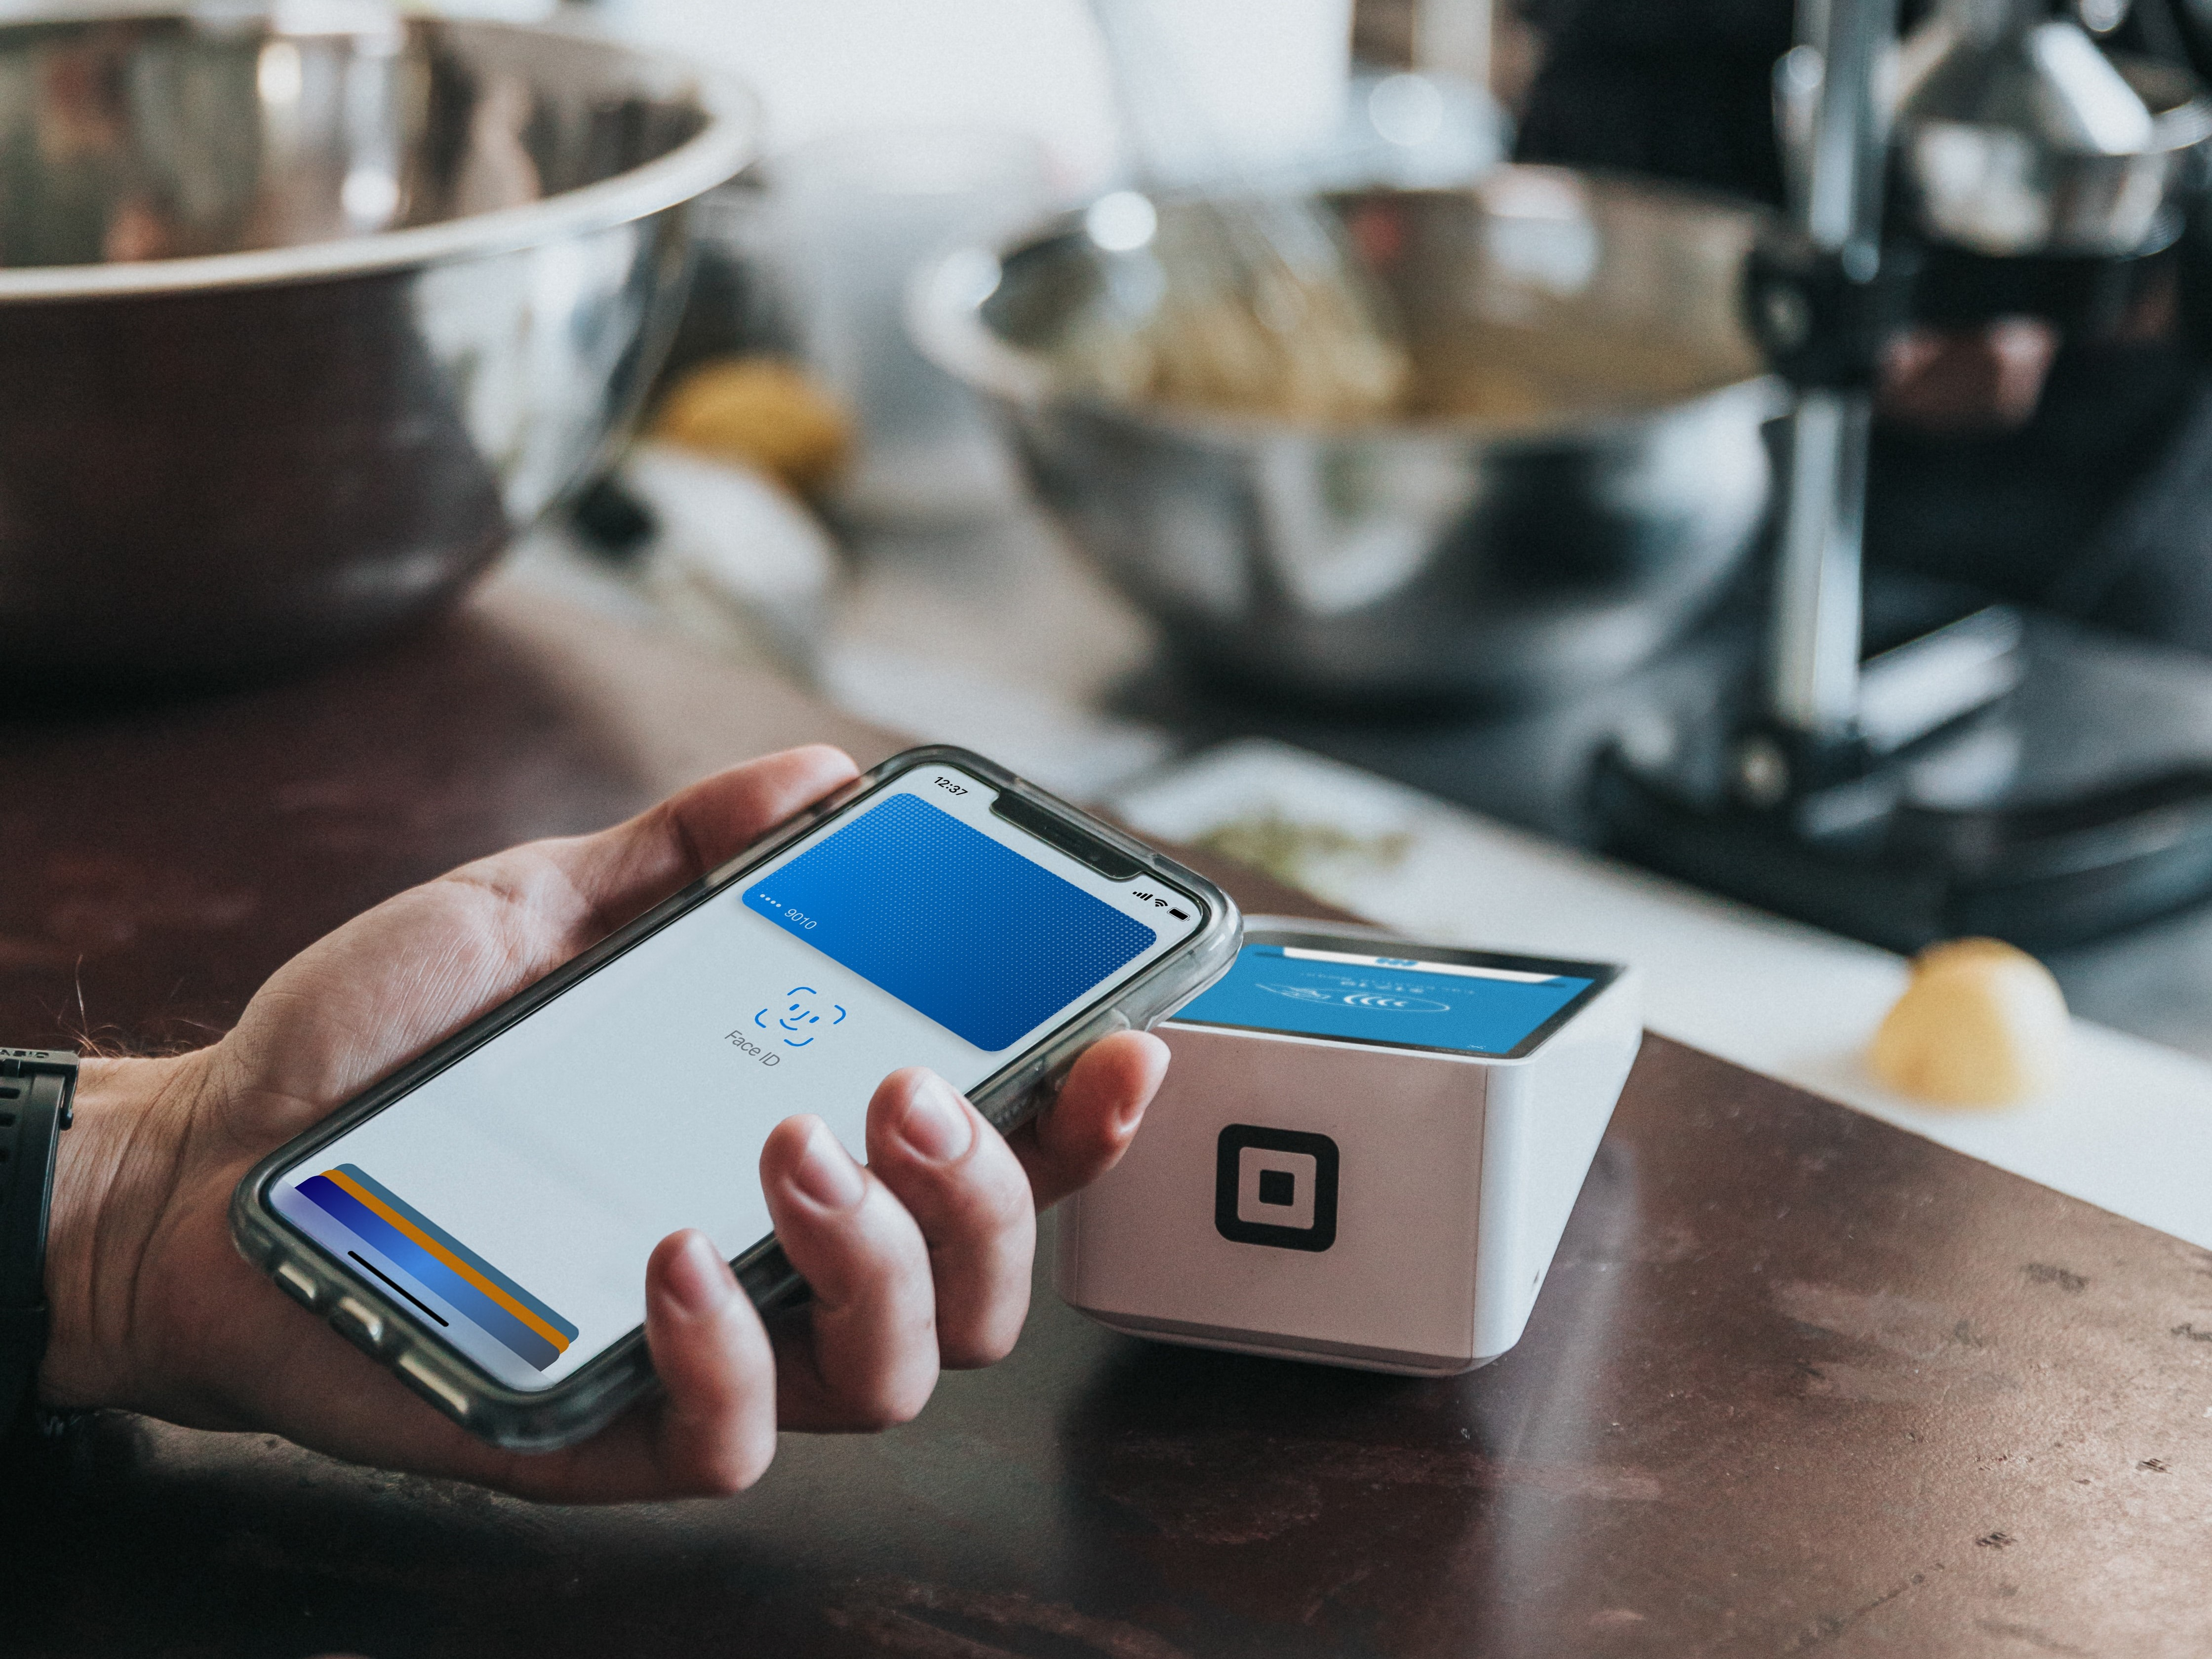 SoftBank and Ant Financial Inject USD 1 Billion into Fintech Pioneer Paytm